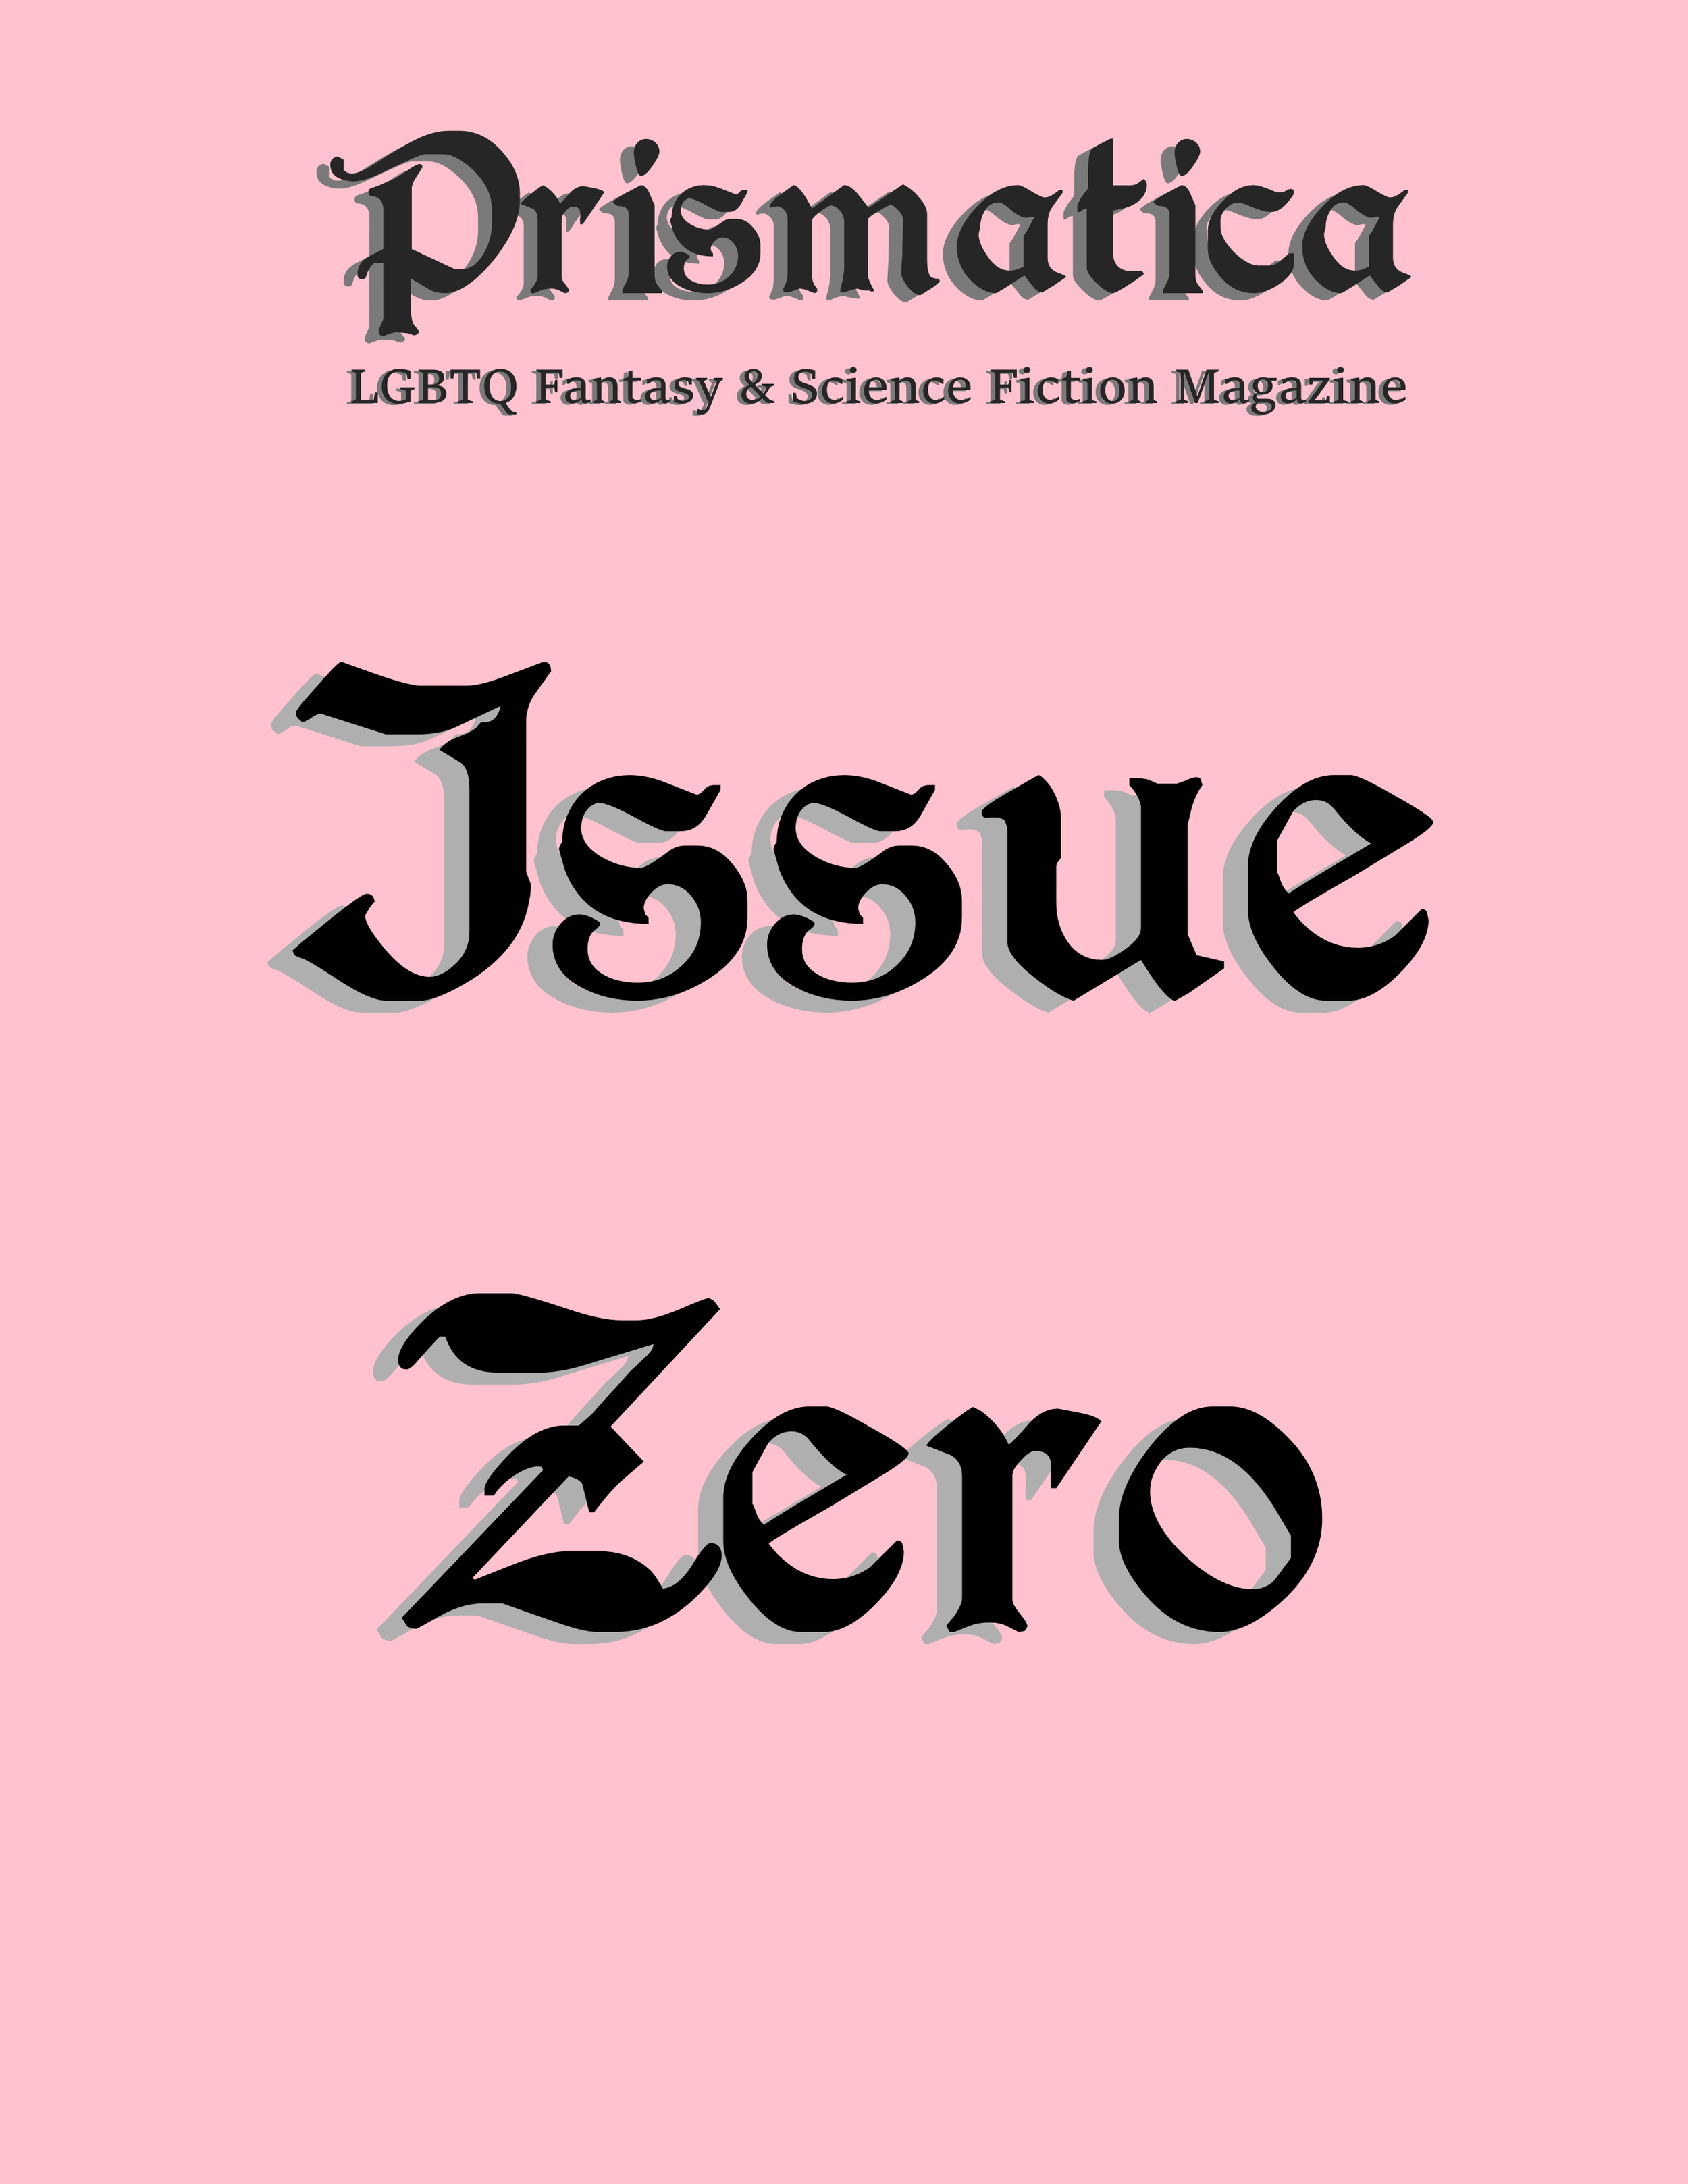 Issue 0: (Before April 2019)